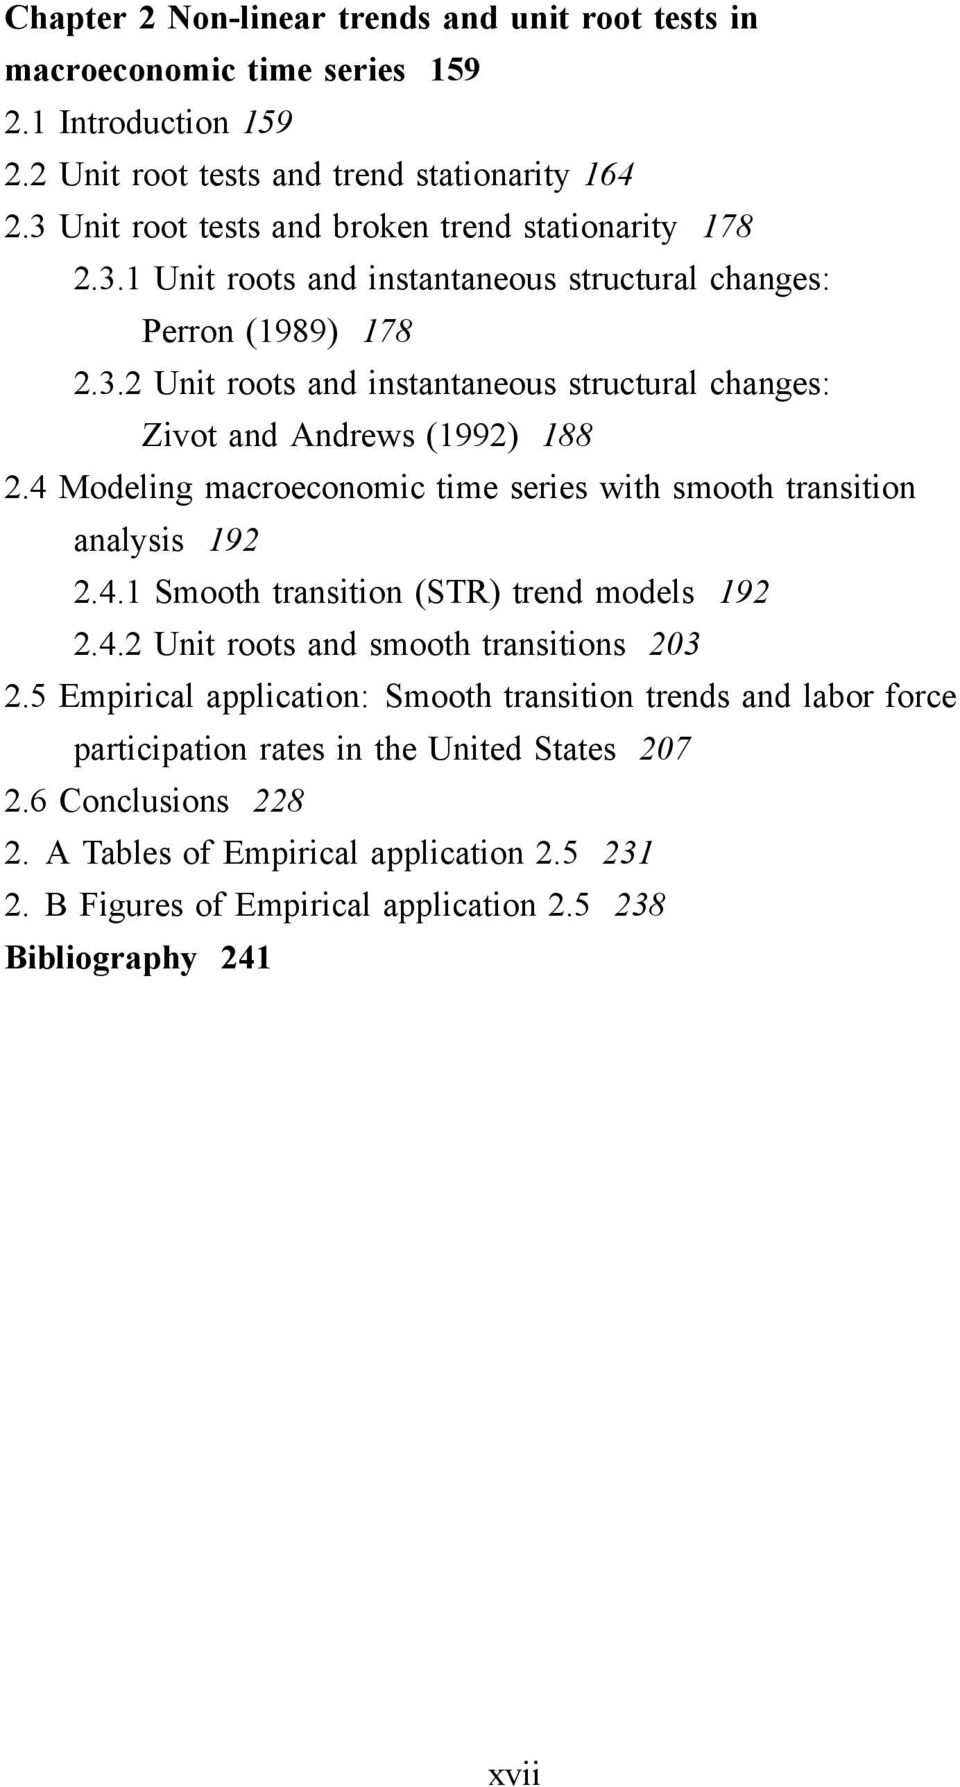 4 Modeling macroeconomic time series with smooth transition analysis 192 2.4.1 Smooth transition (STR) trend models 192 2.4.2 Unit roots and smooth transitions 203 2.